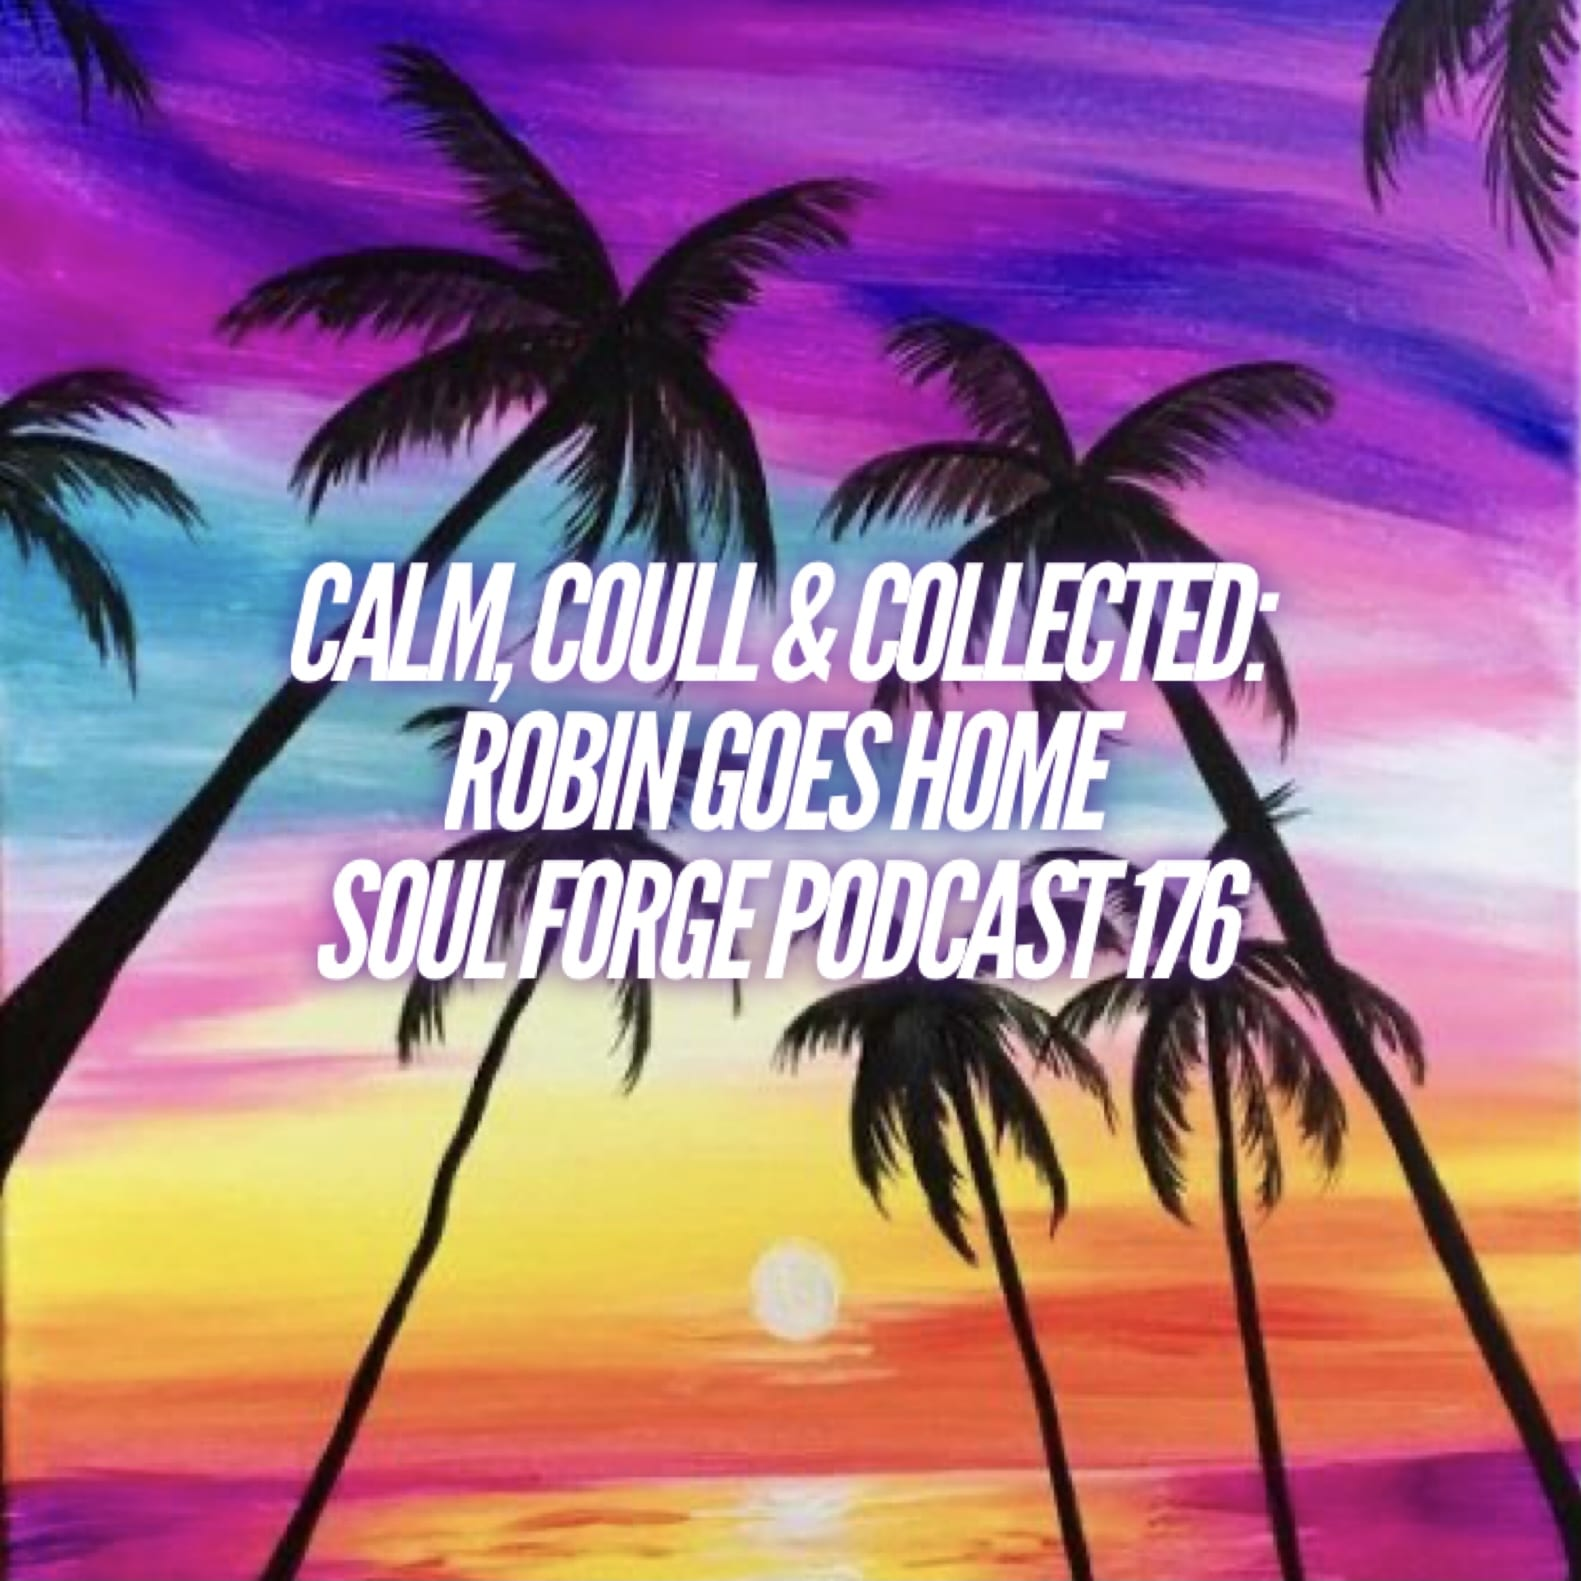 Calm, Coull & Collected